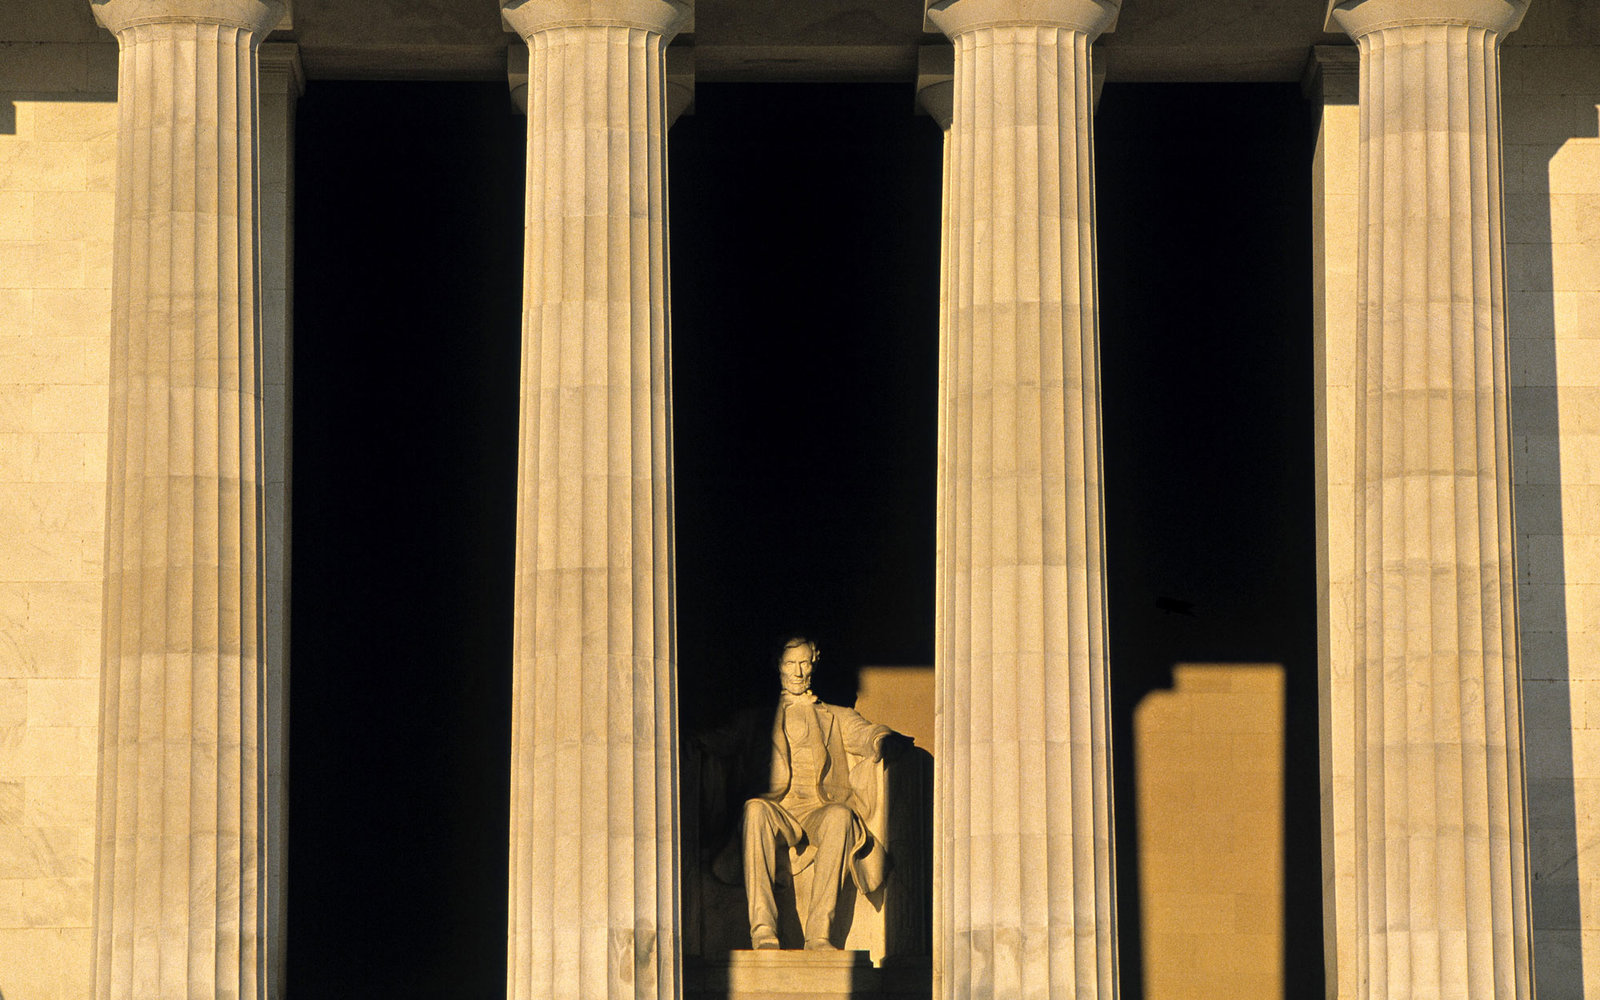 Lincoln Memorial Washington, D.C.